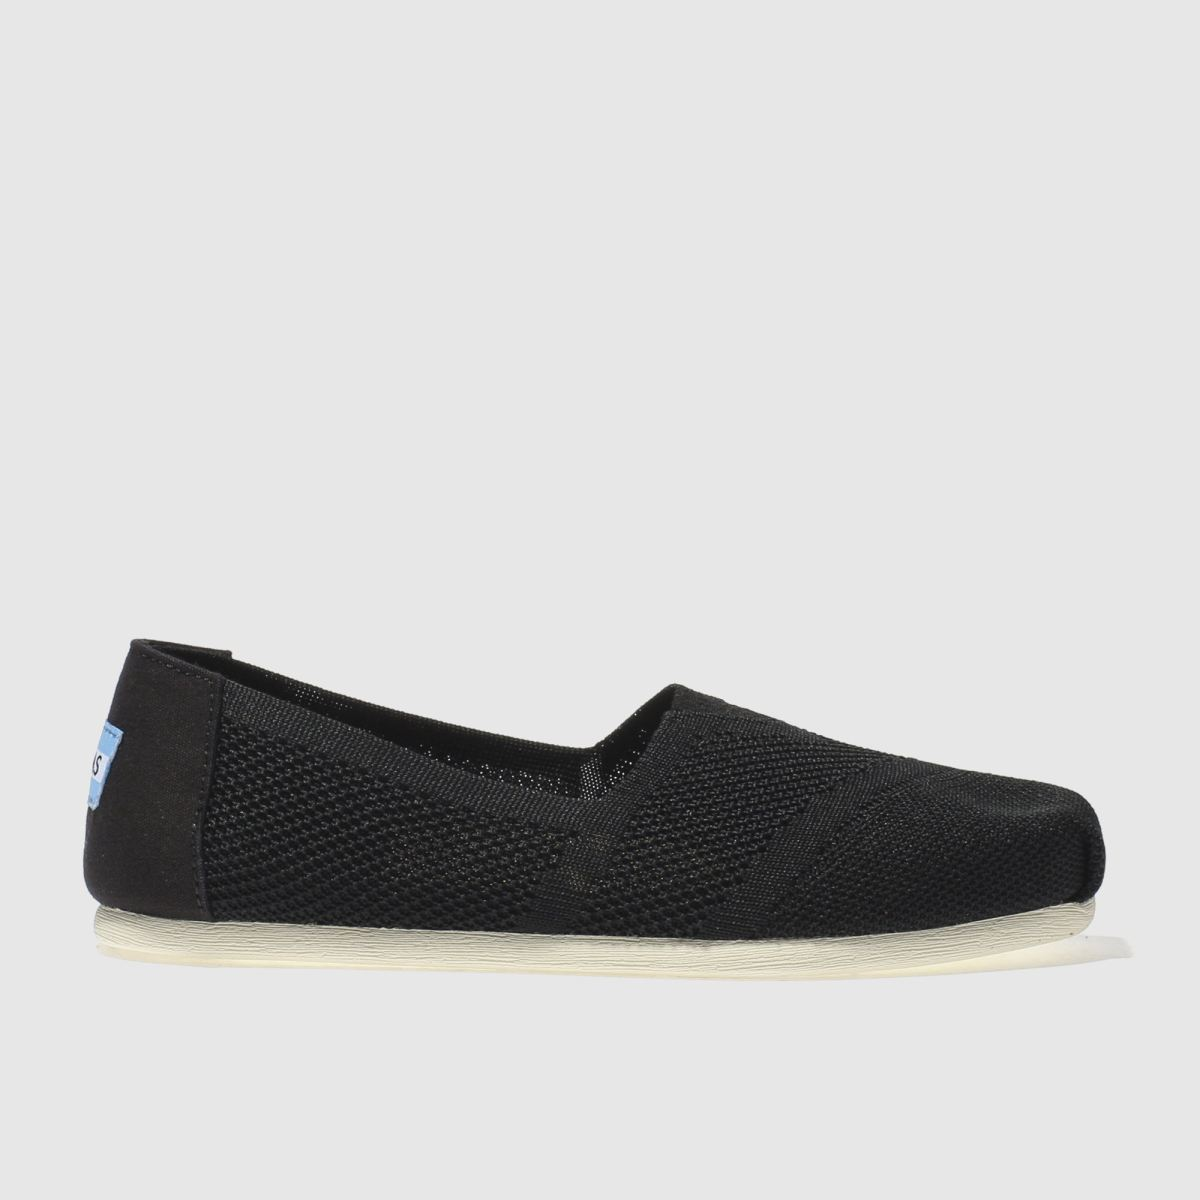 toms black & white seasonal classic custom knit flat shoes